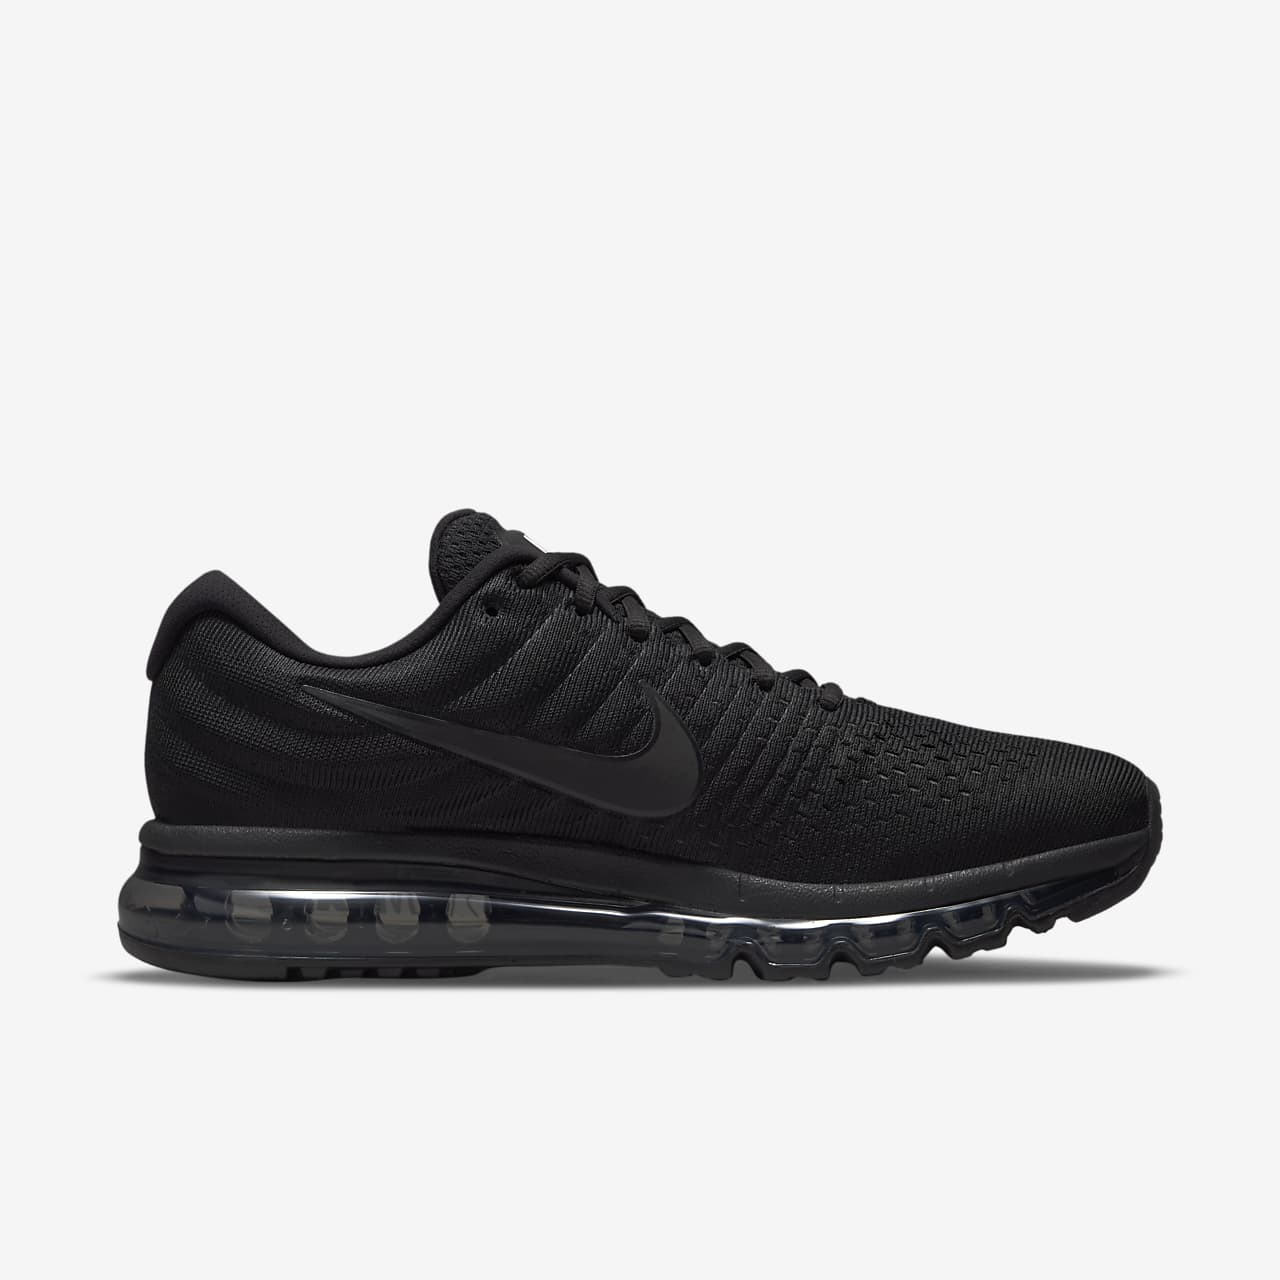 buy popular be7a7 6e114 Chaussure pour Homme. Nike Air Max 2017